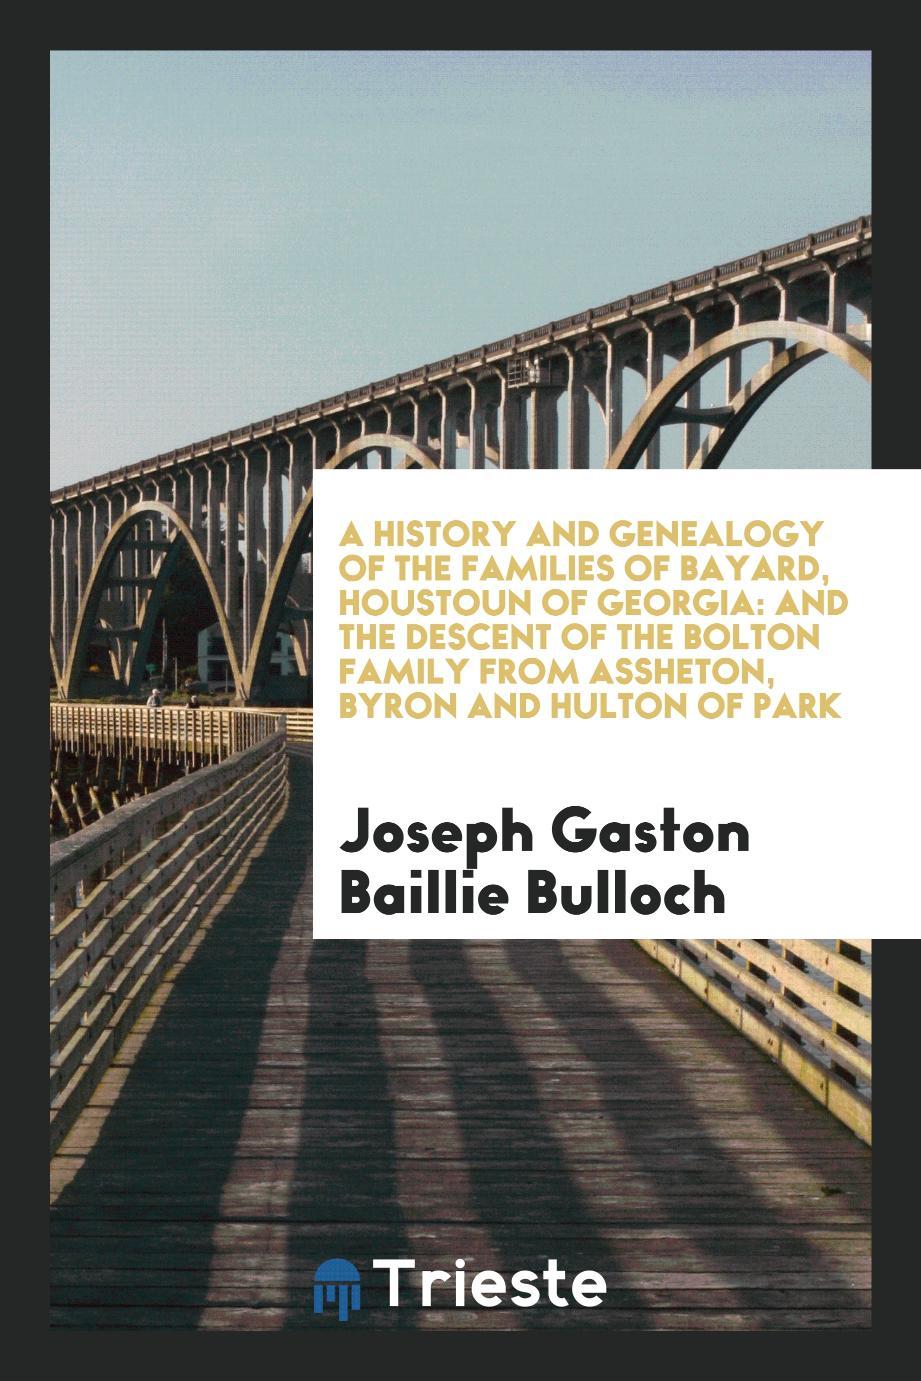 A History and Genealogy of the Families of Bayard, Houstoun of Georgia: and the Descent of the Bolton Family from Assheton, Byron and Hulton of Park